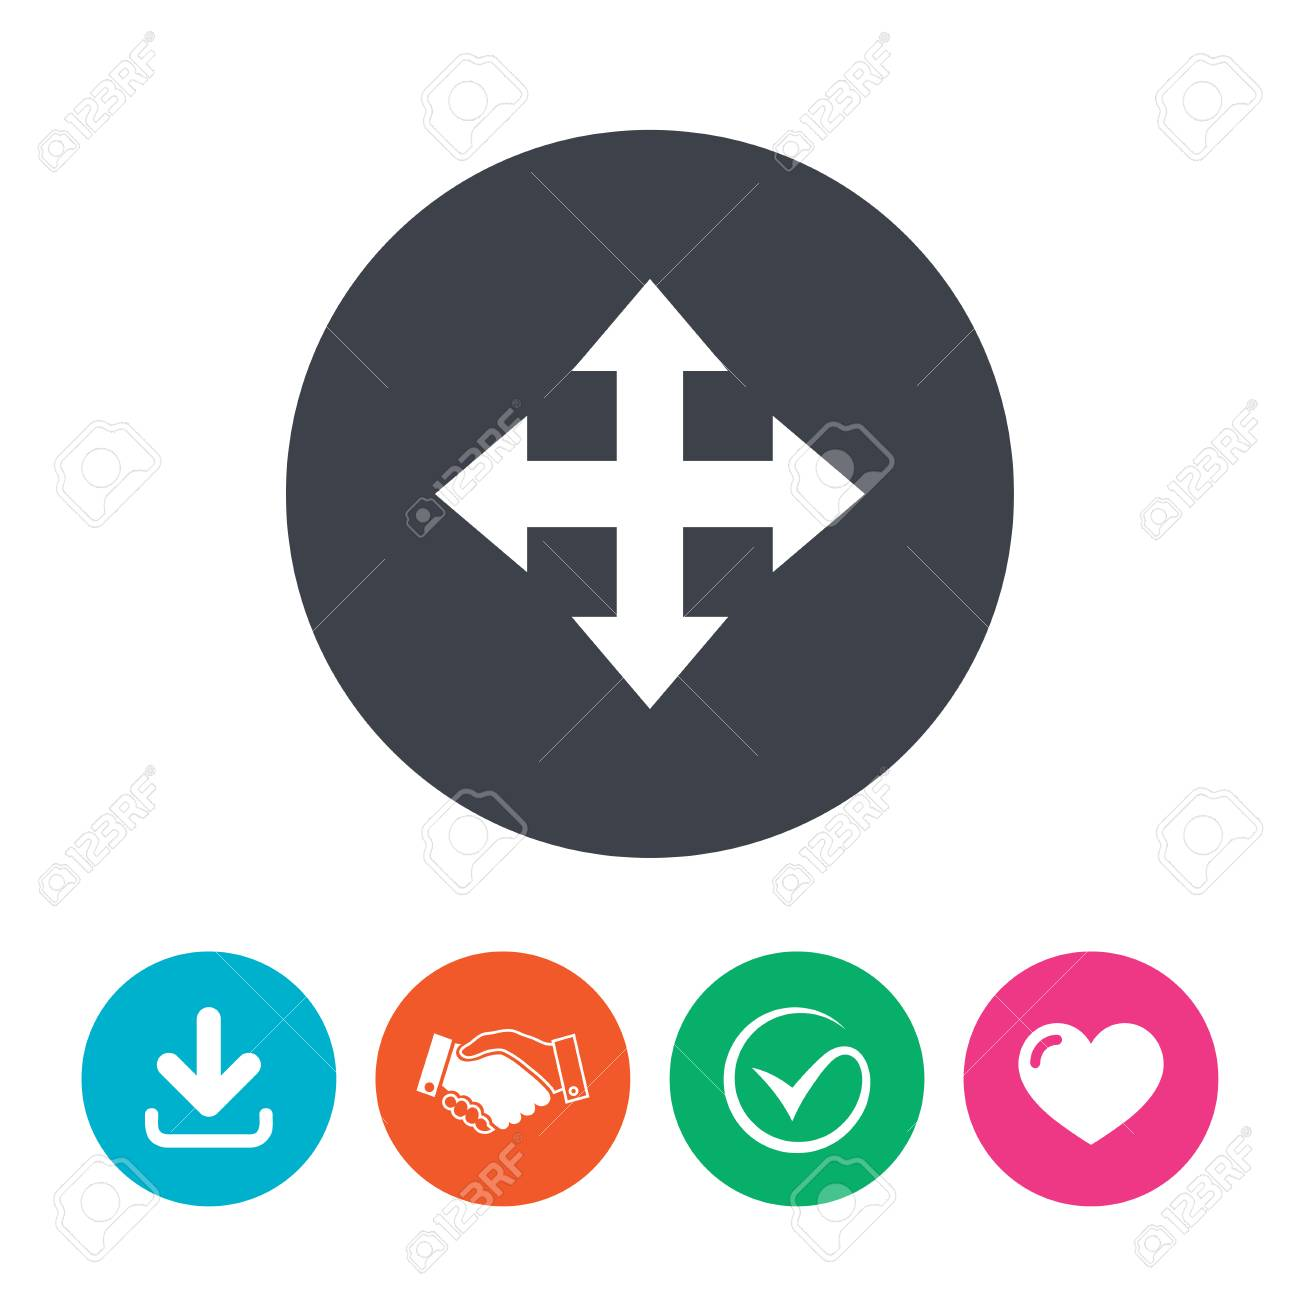 Fullscreen sign icon  Arrows symbol  Icon for App  Download arrow,